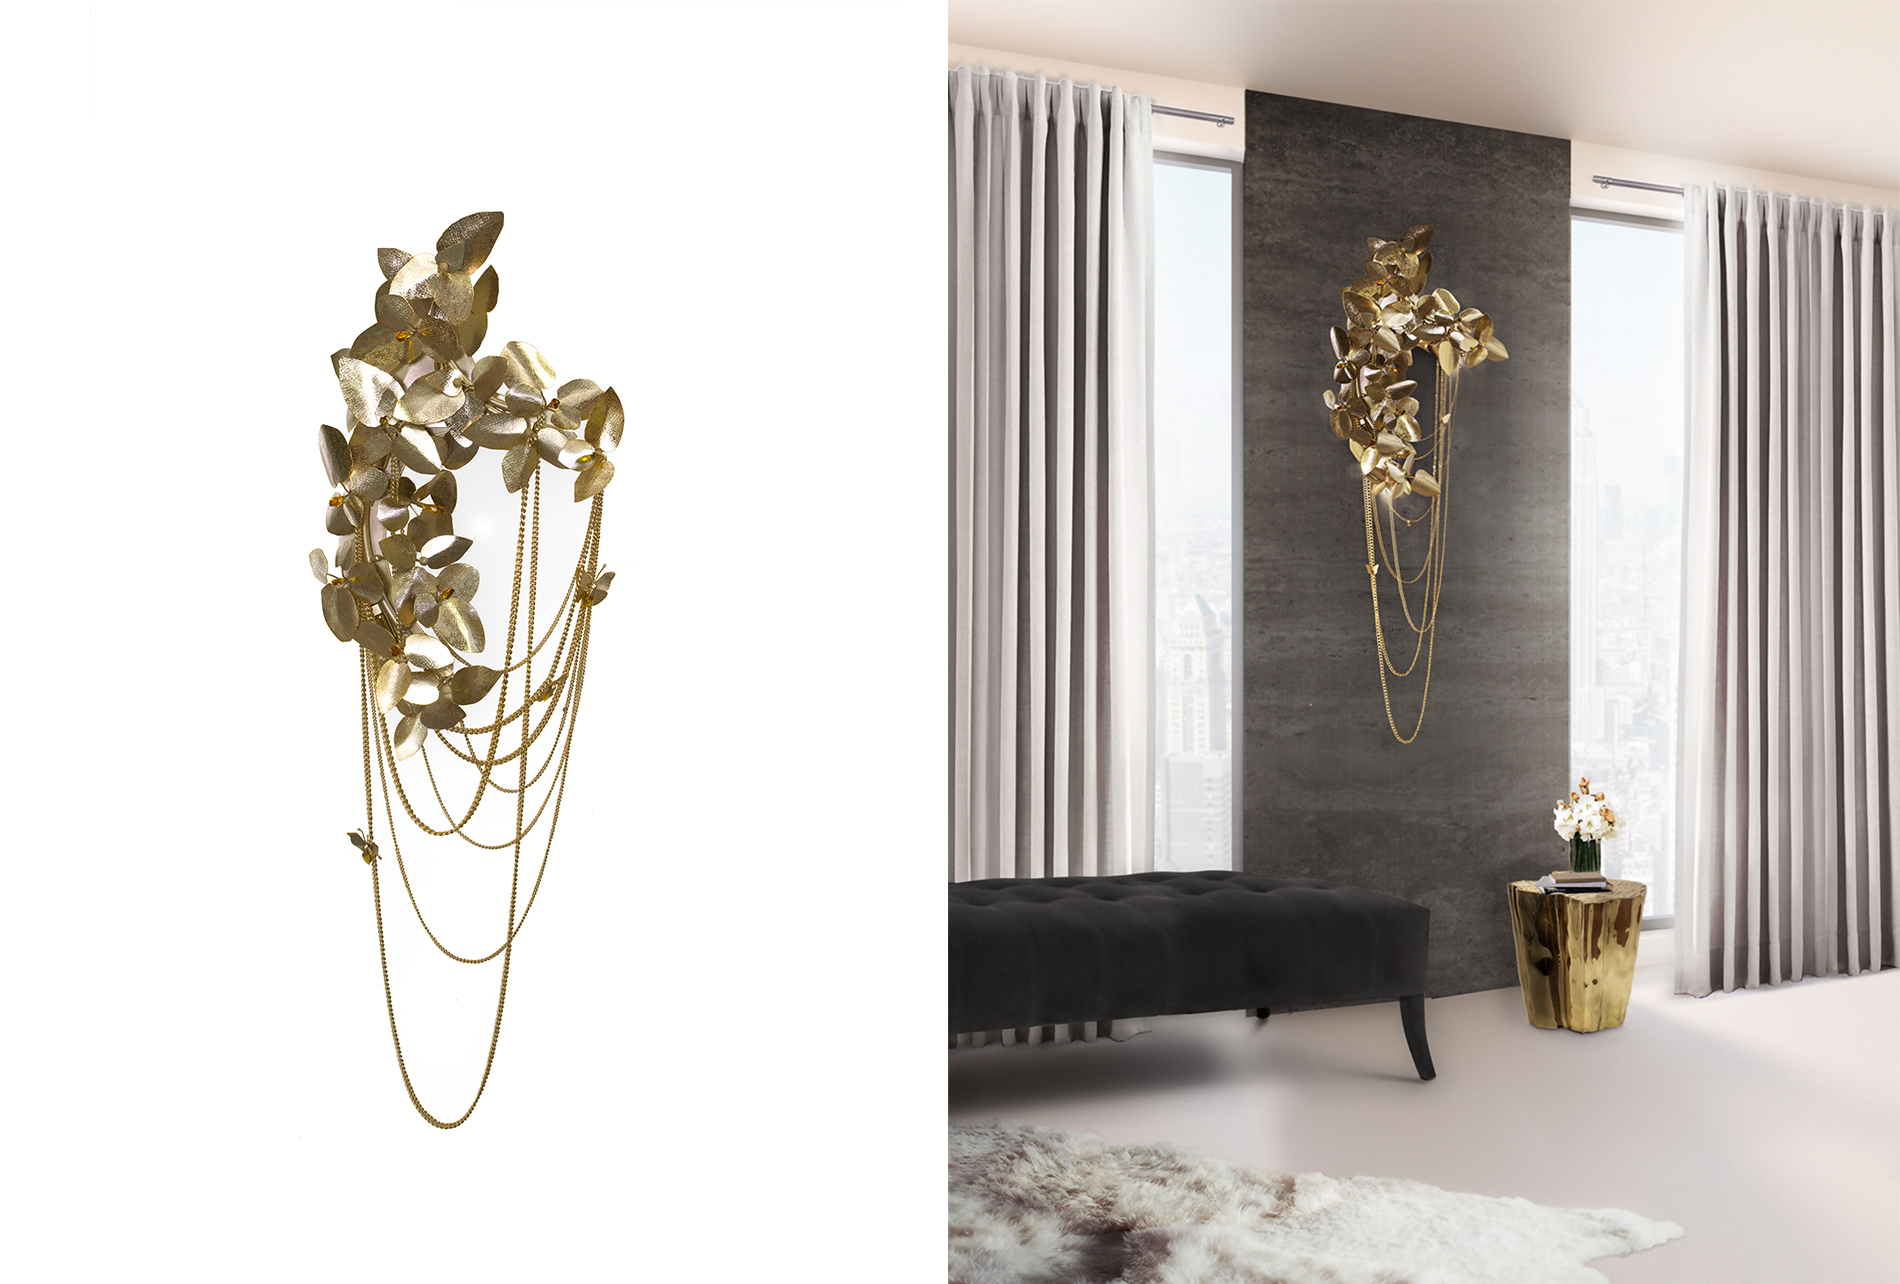 McQueen Wall Lamp wall lights Luxury design: wall lights by Luxxu to create a glamorous decor McQueen Wall Lamp